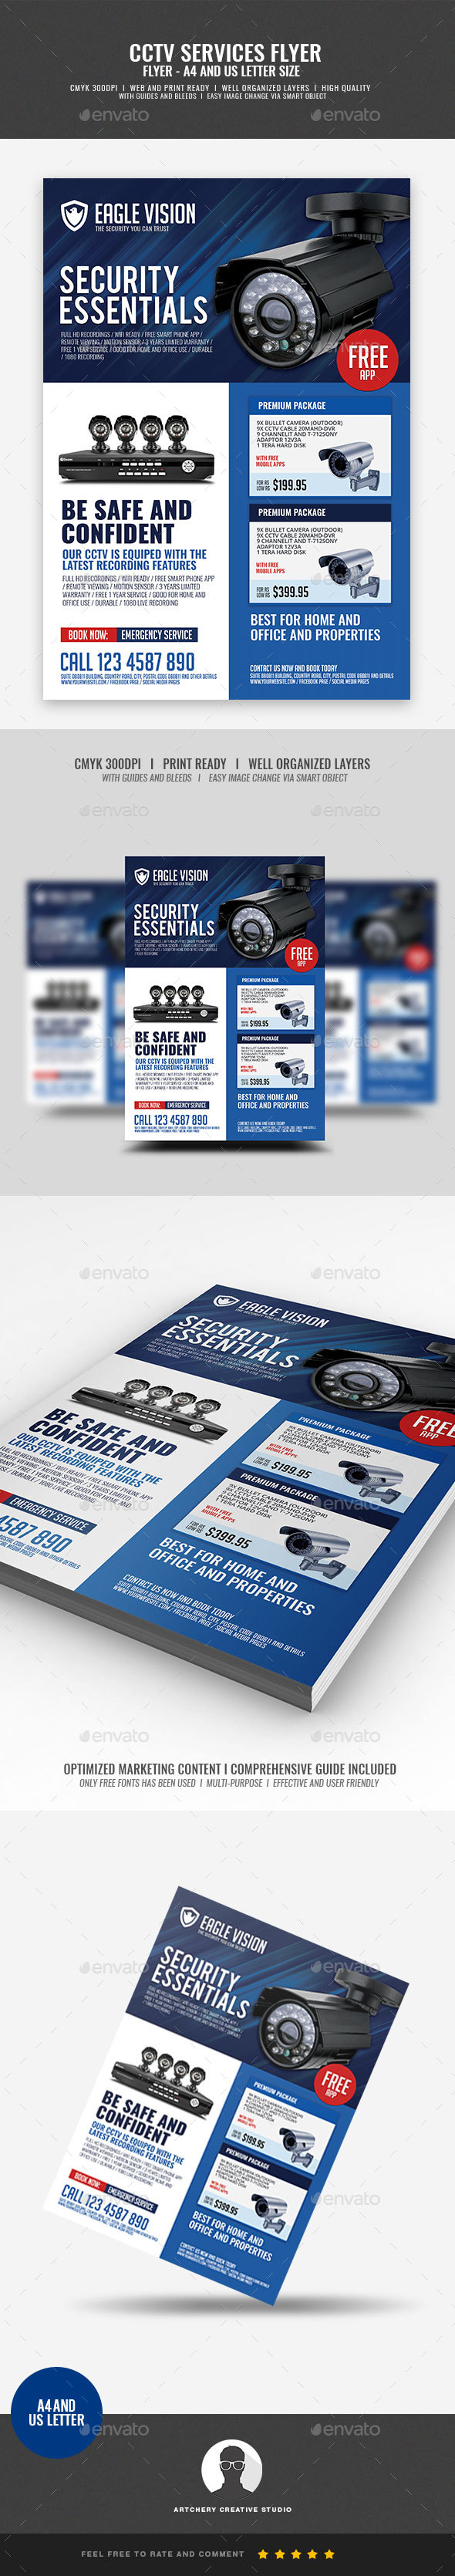 CCTV Camera Center - Corporate Flyers